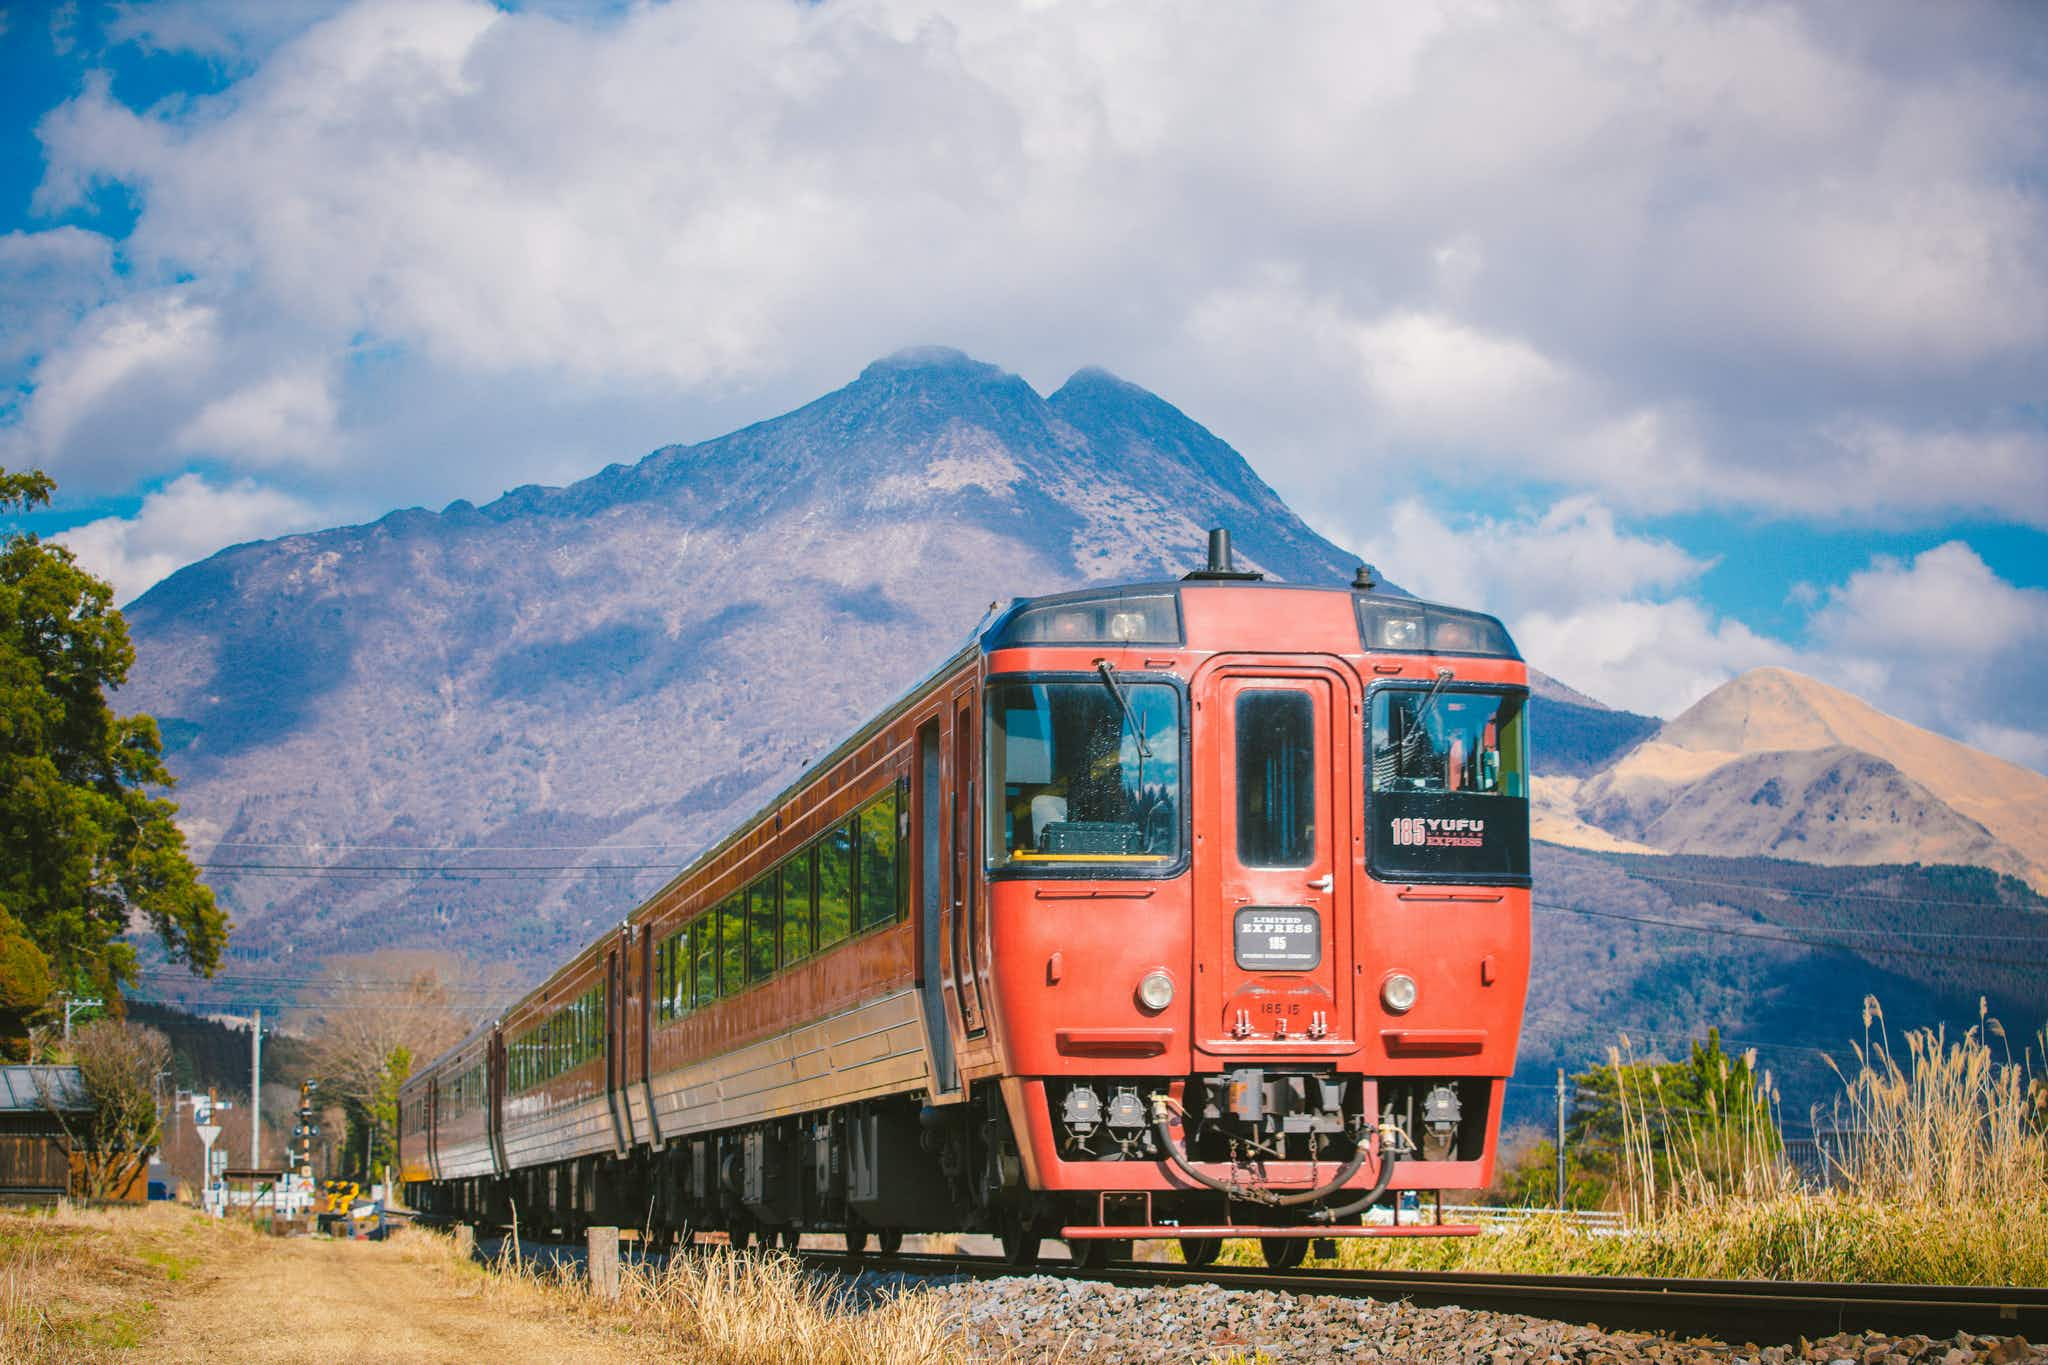 Why does this Japanese train bark like a dog and snort like a deer?